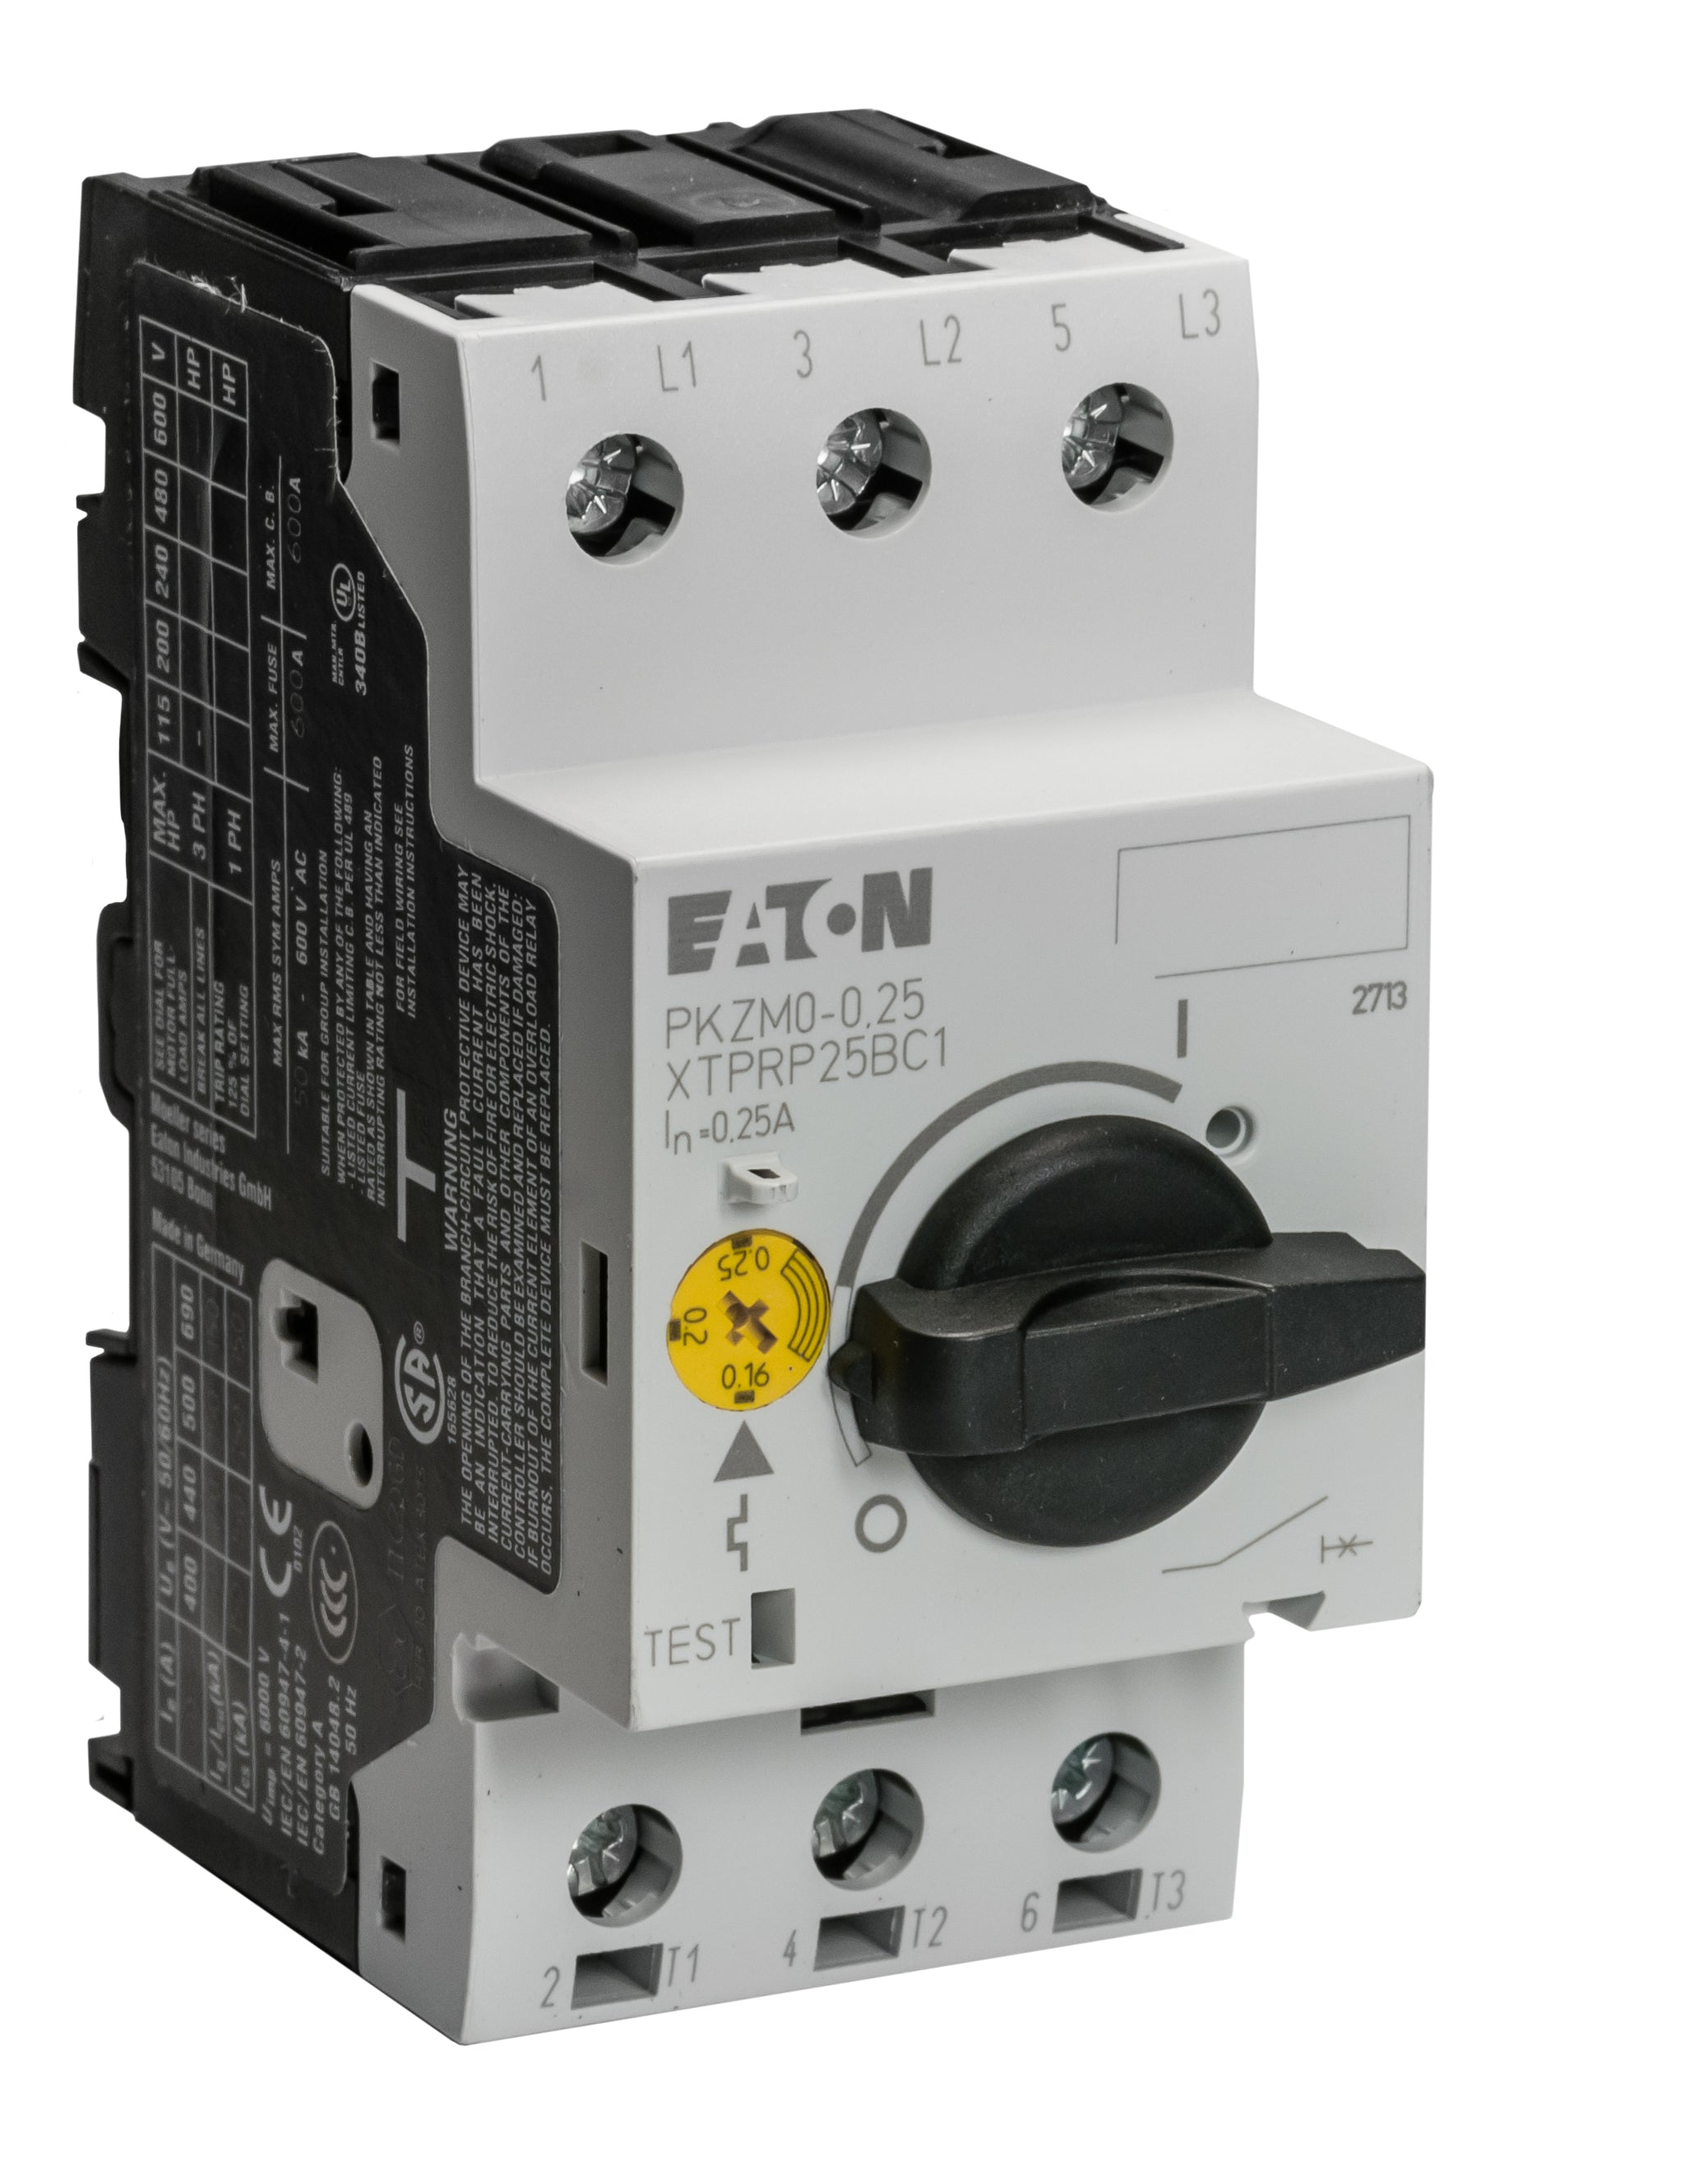 eaton pkzm0 motor protector switches